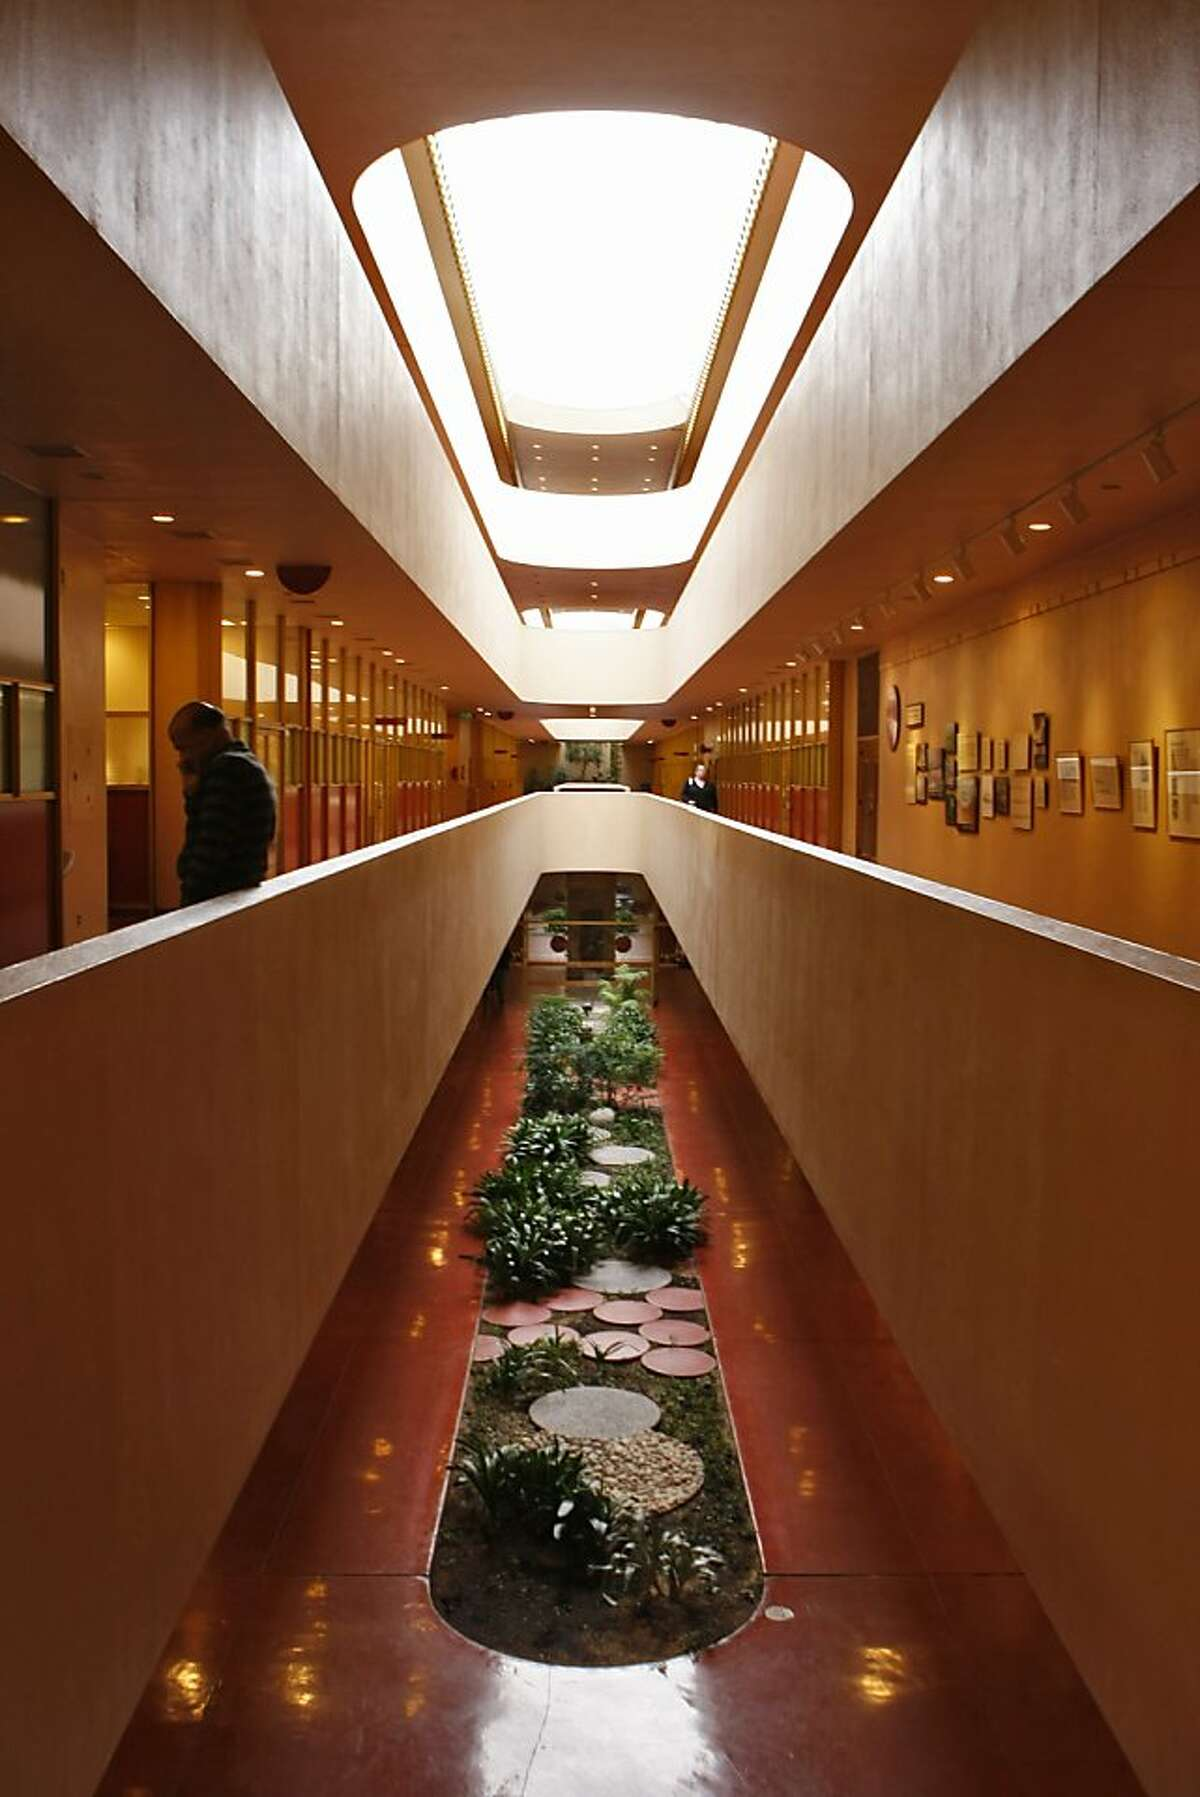 The Marin County Civic Center, designed by Frank Lloyd Wright not long before his death at 91, is 50 years old.